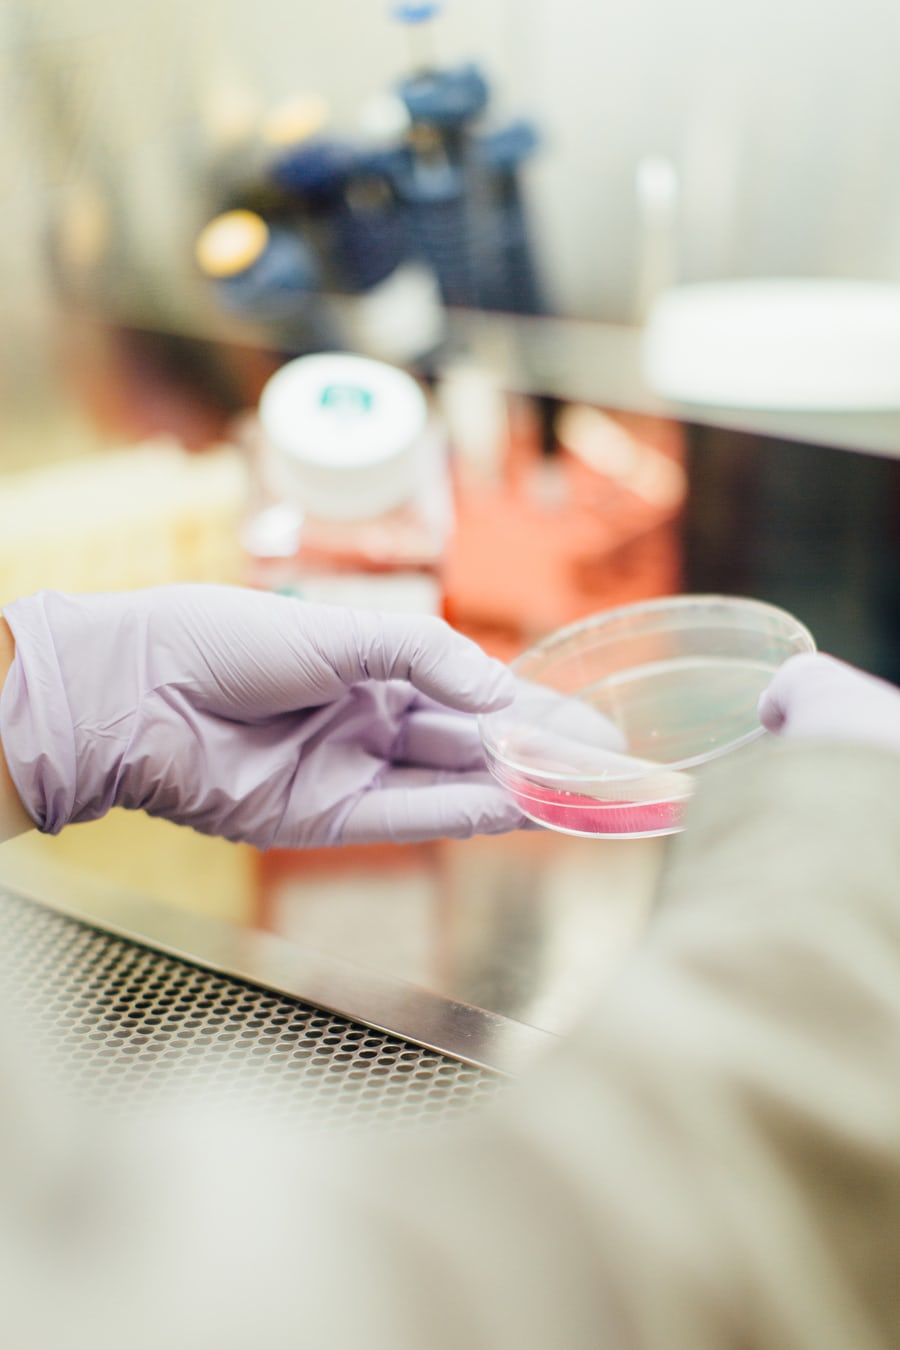 hangs wearing latex gloves holding a petri dish doing cancer genetic testing in a laboratory